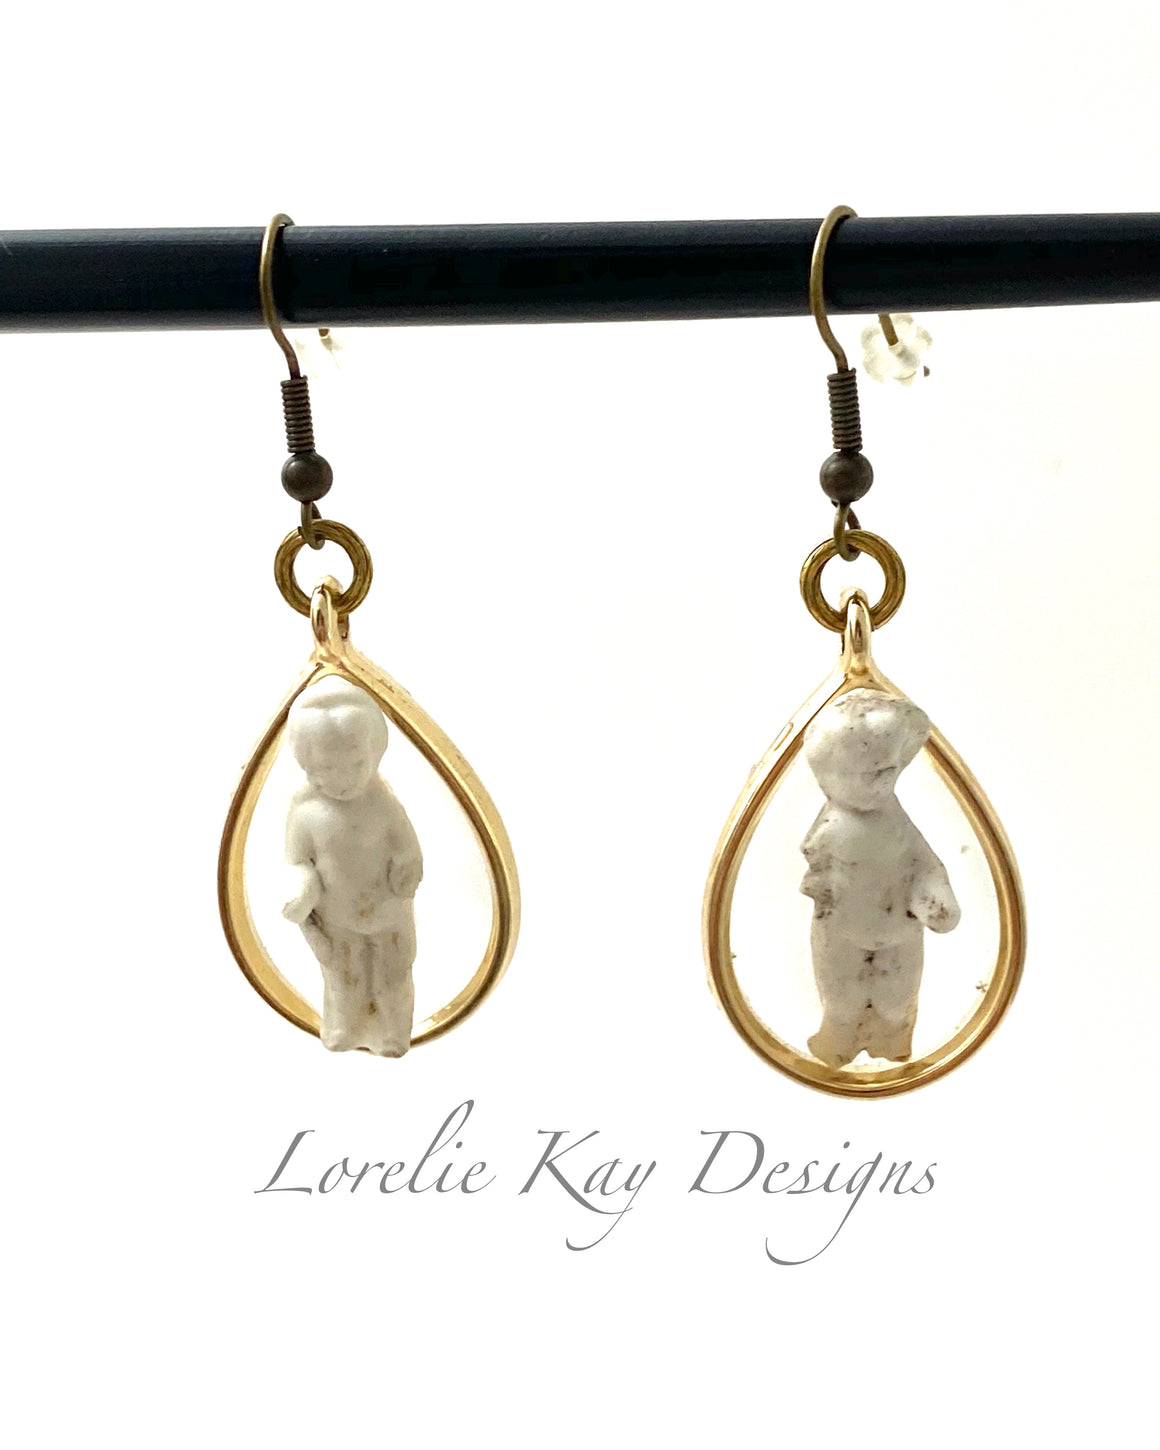 Frozen Charlotte Doll Earrings Cast Resin Teardrop Dangles